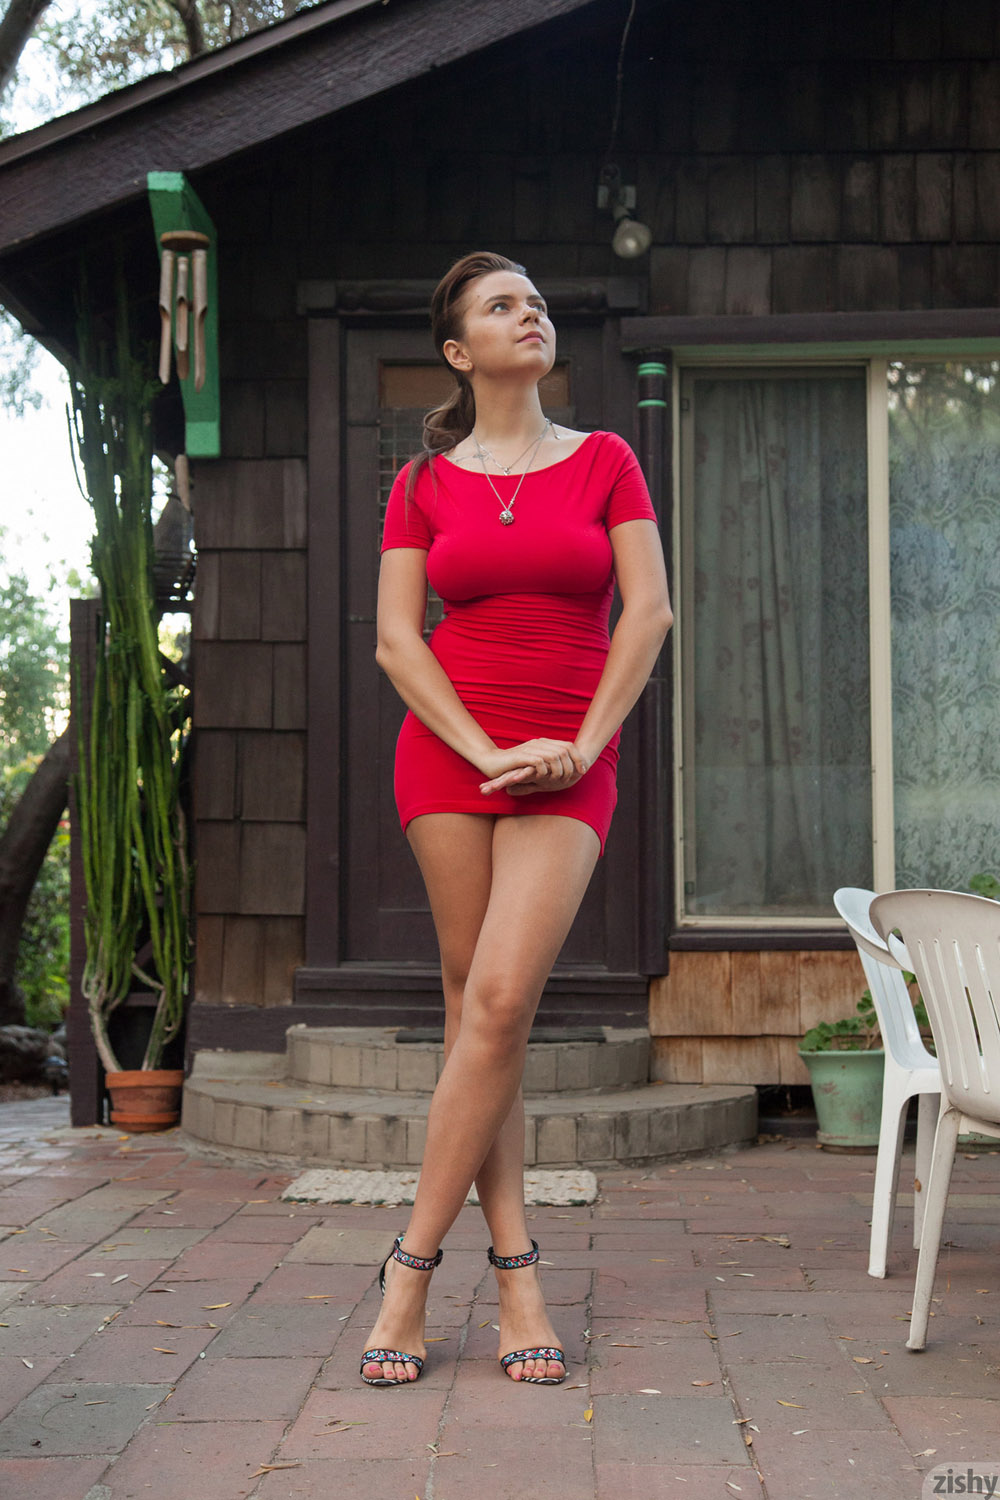 Horny girls, up skirts nude red drees that fucking